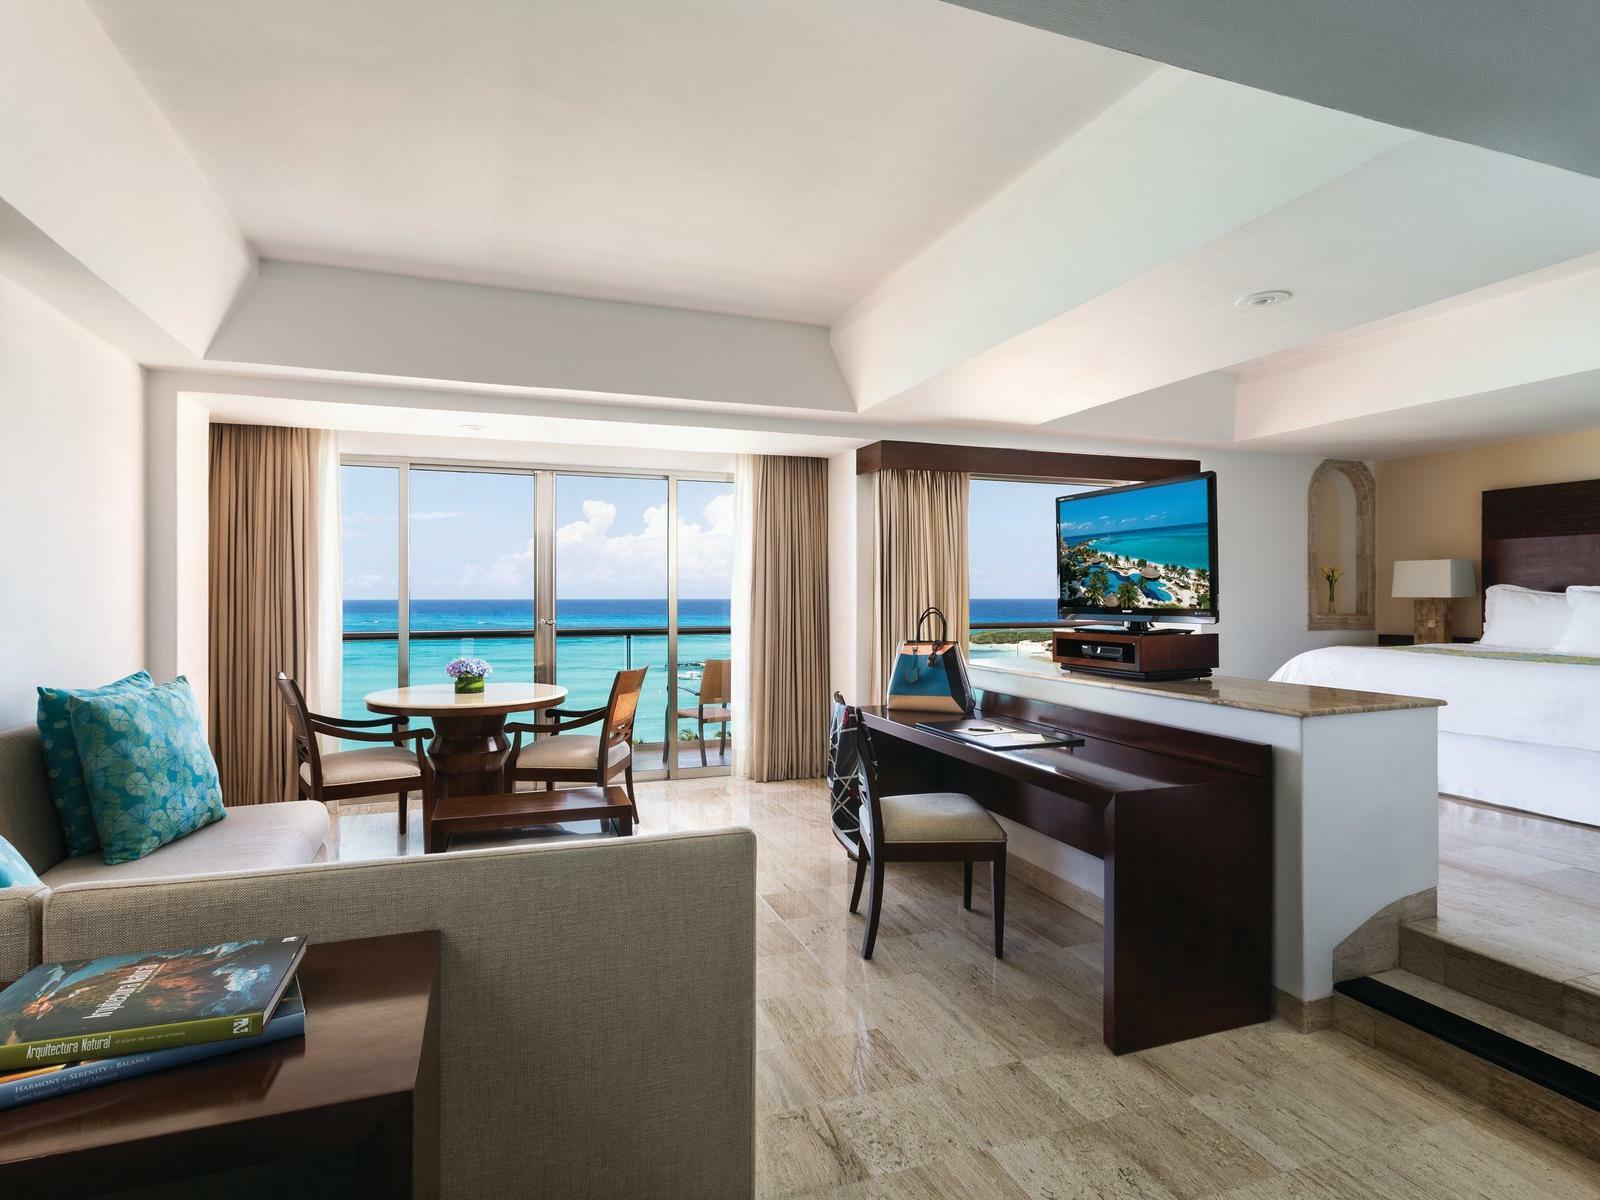 open living room and bedroom with ocean view